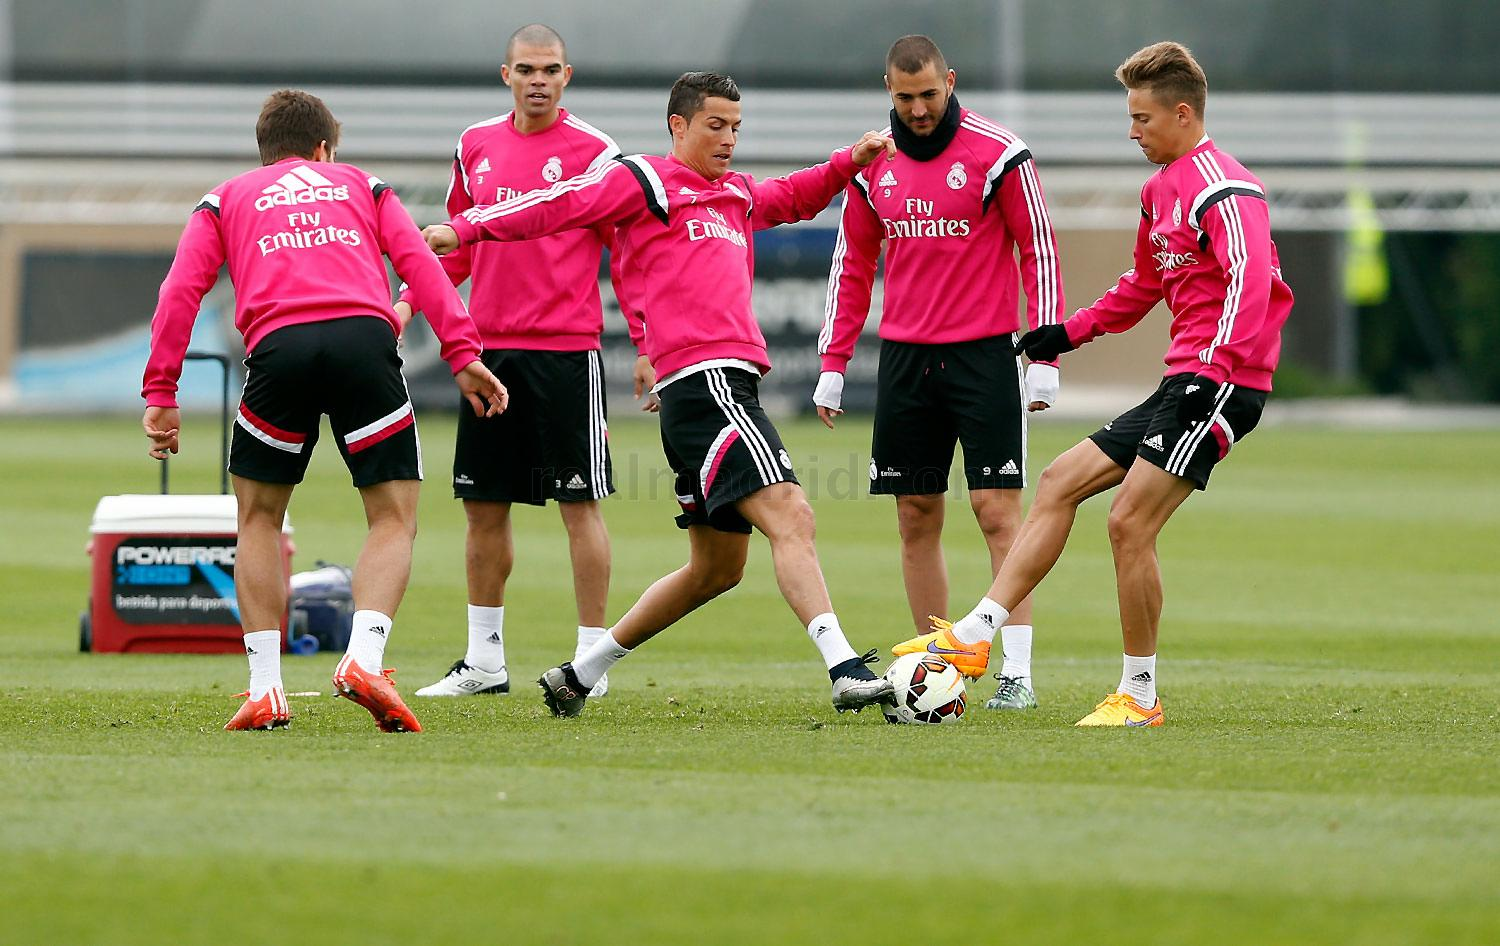 Real Madrid - Entrenamiento del Real Madrid - 10-04-2015